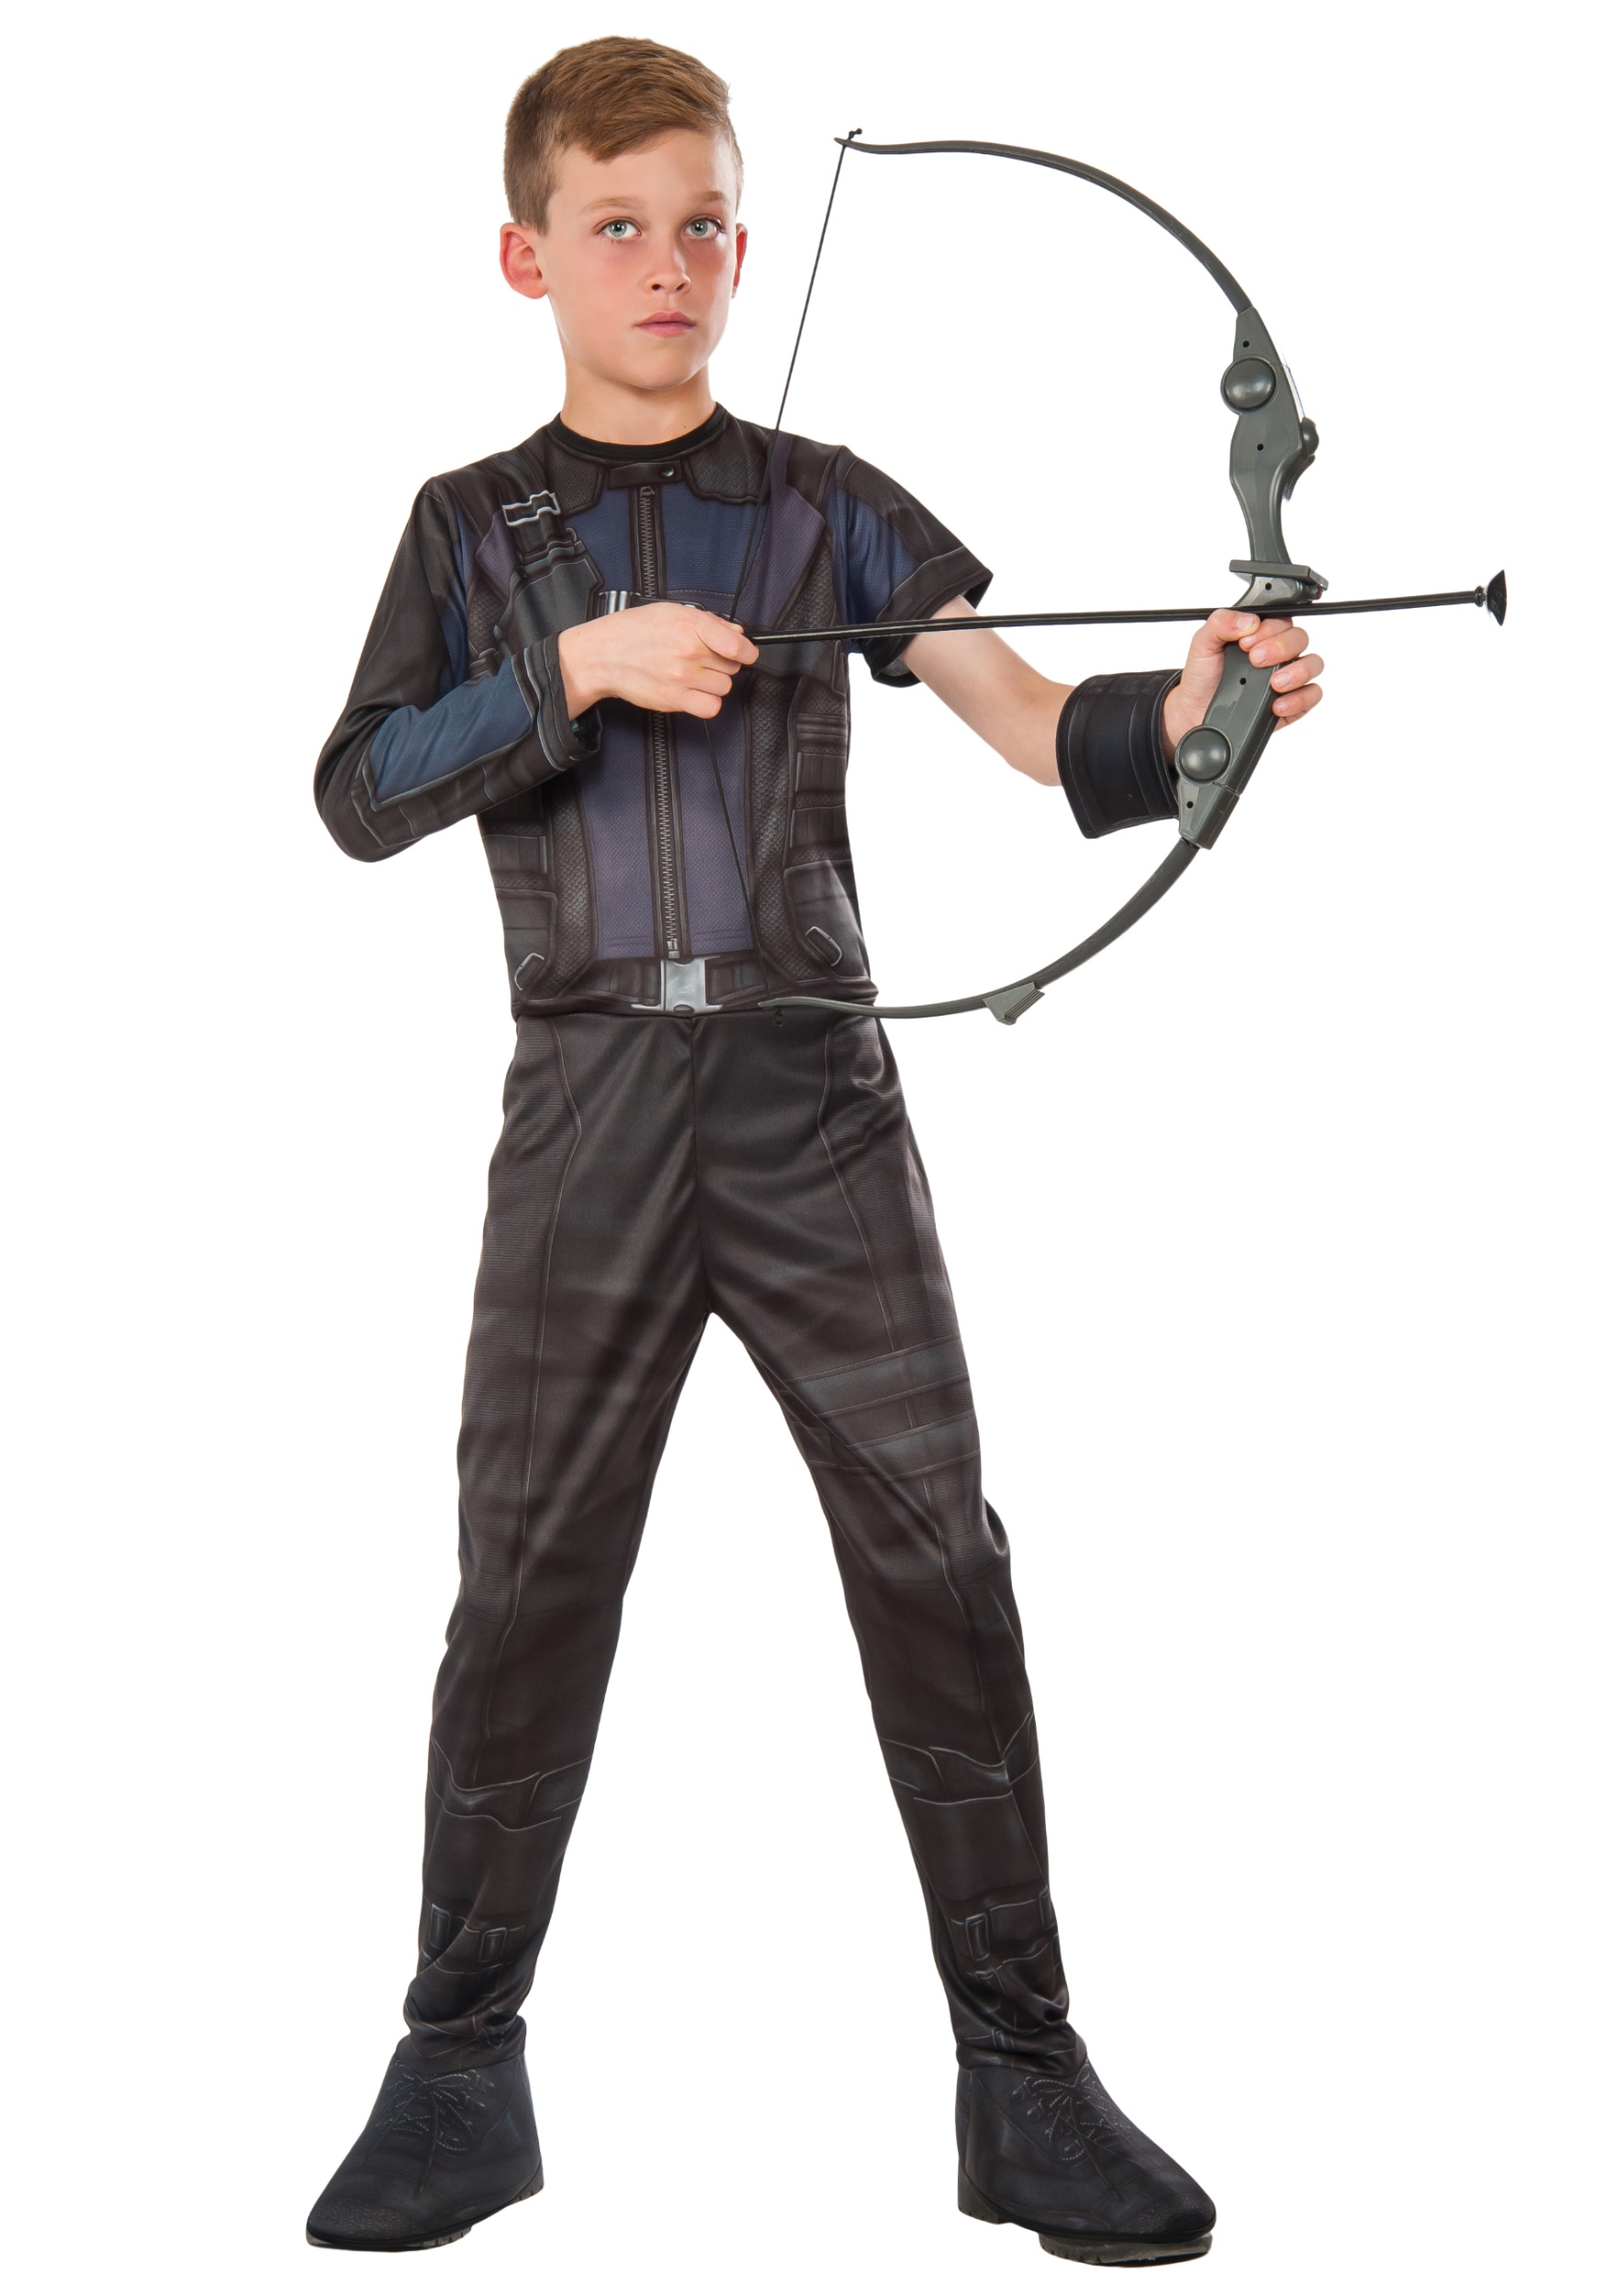 Hawkeye Bow and Arrow Set